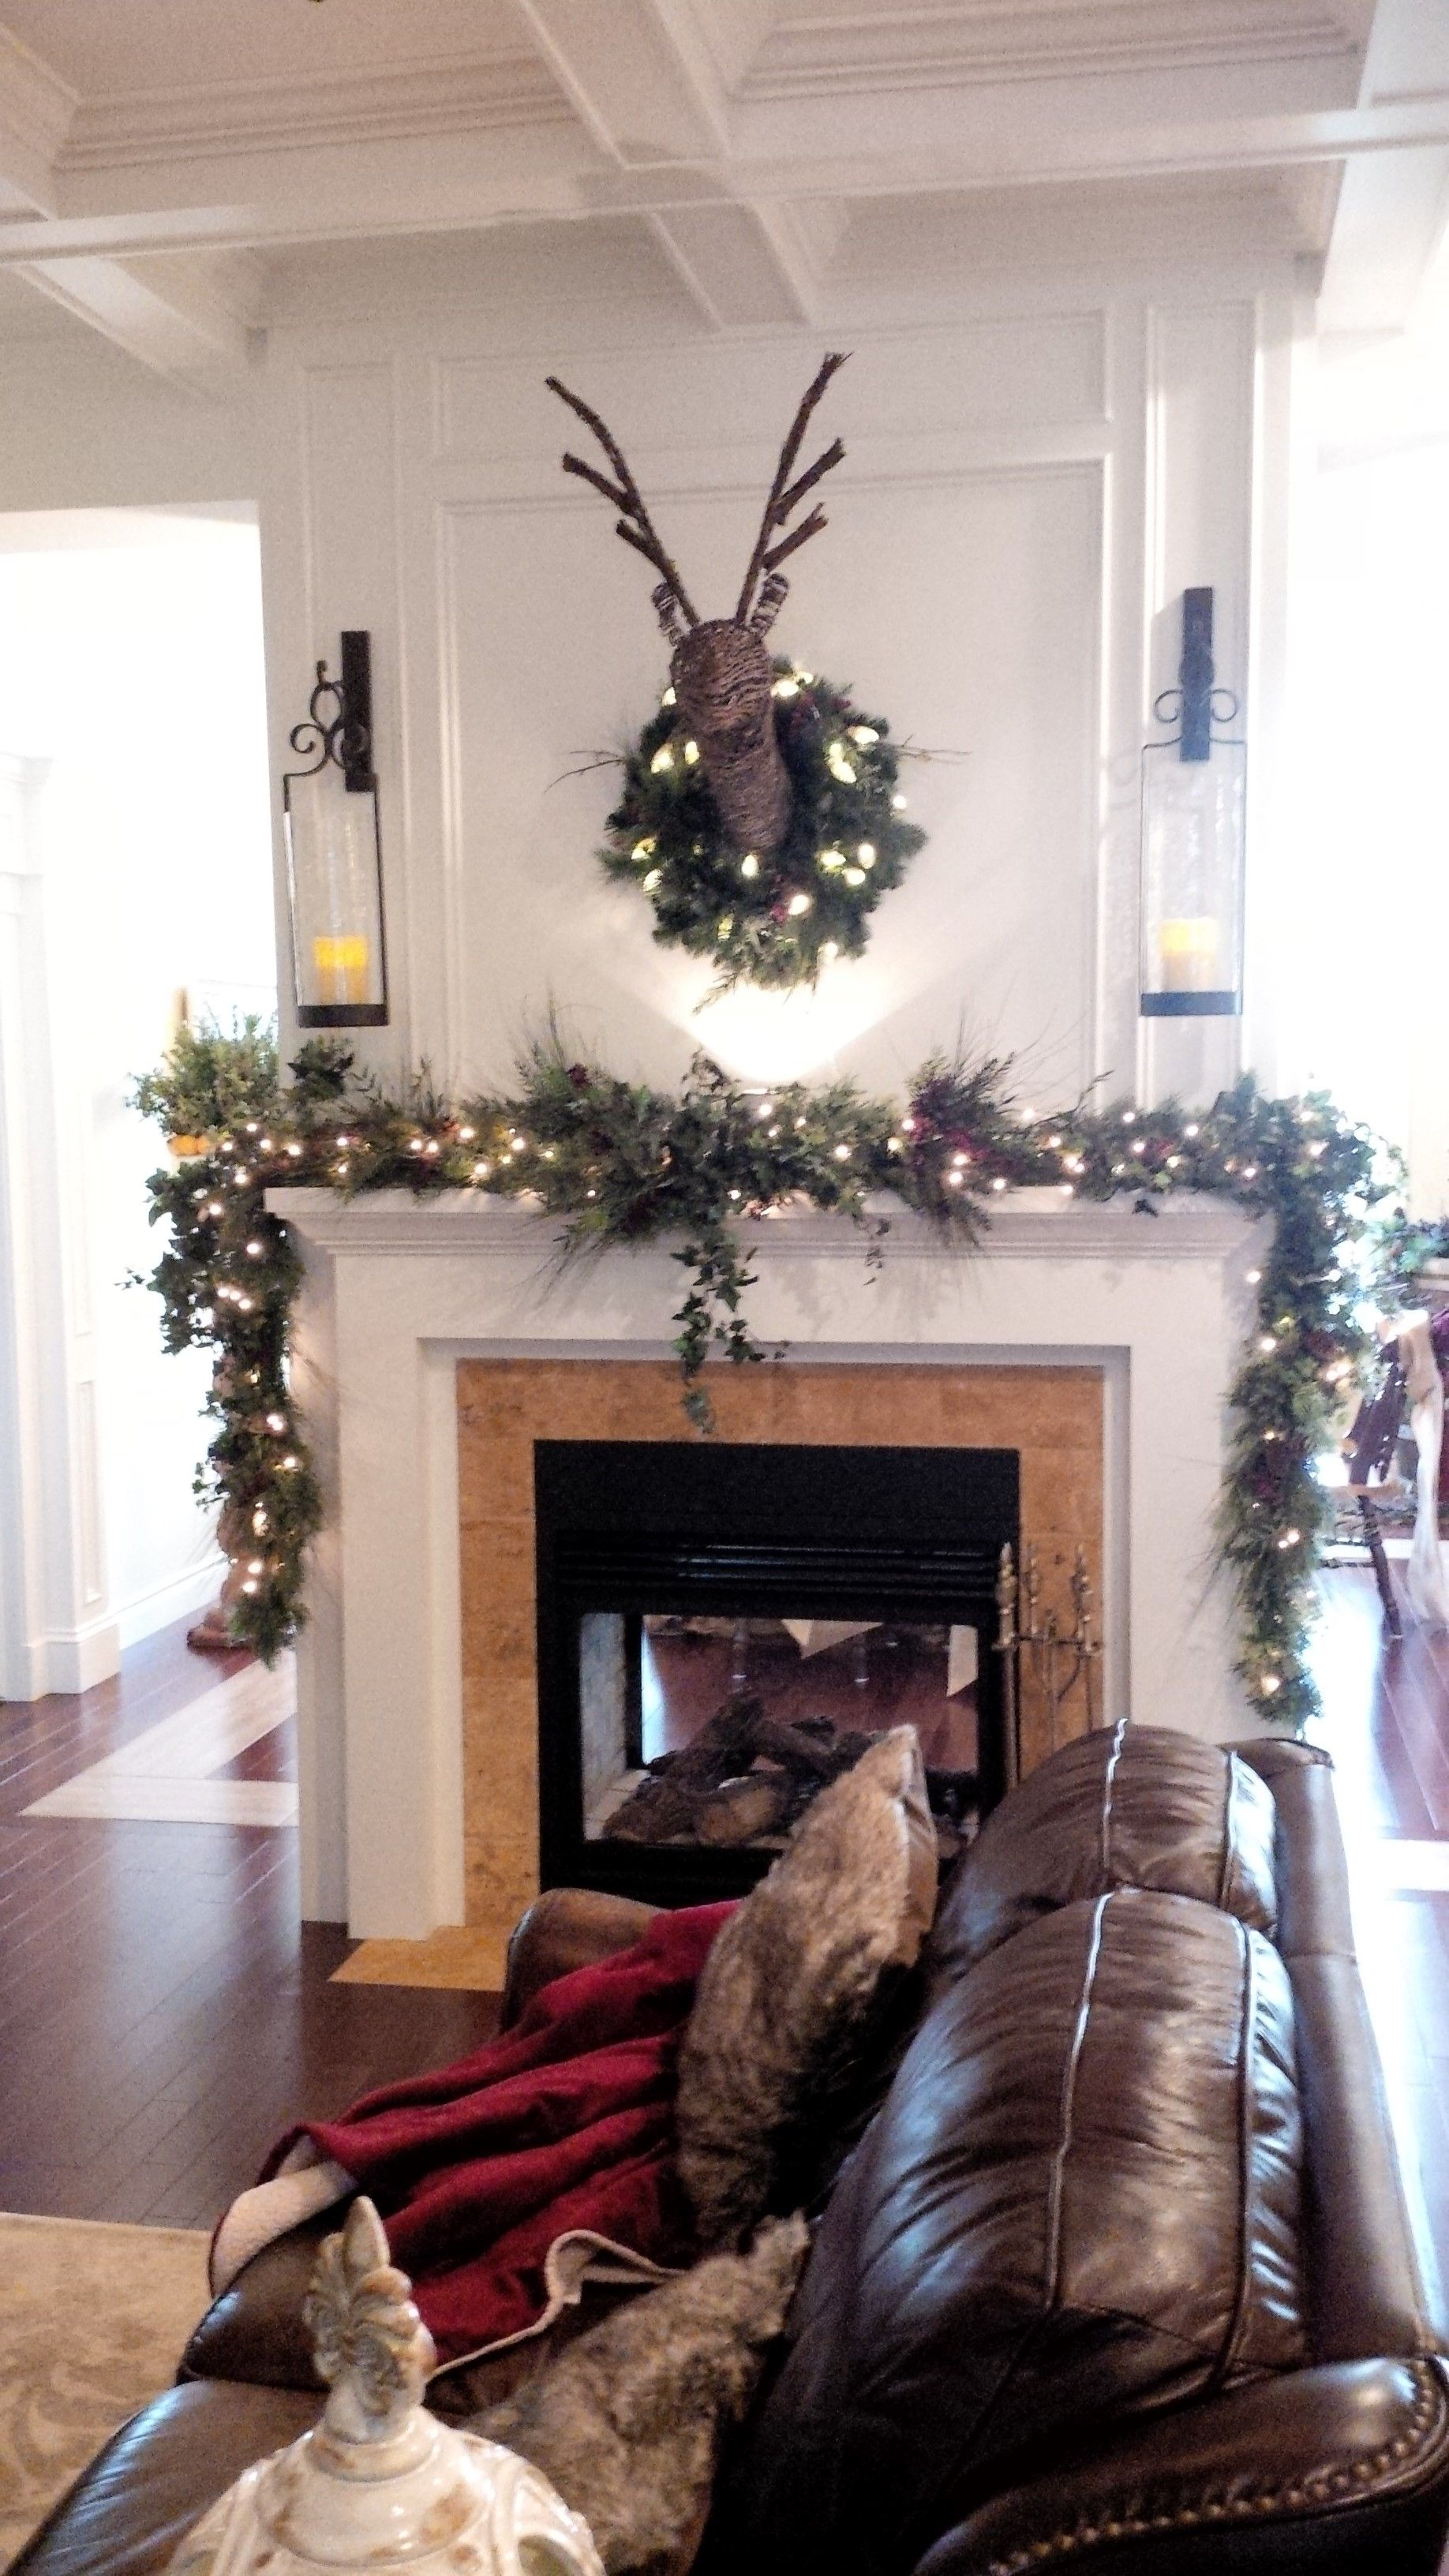 The second side of the two sided fireplace Living room in